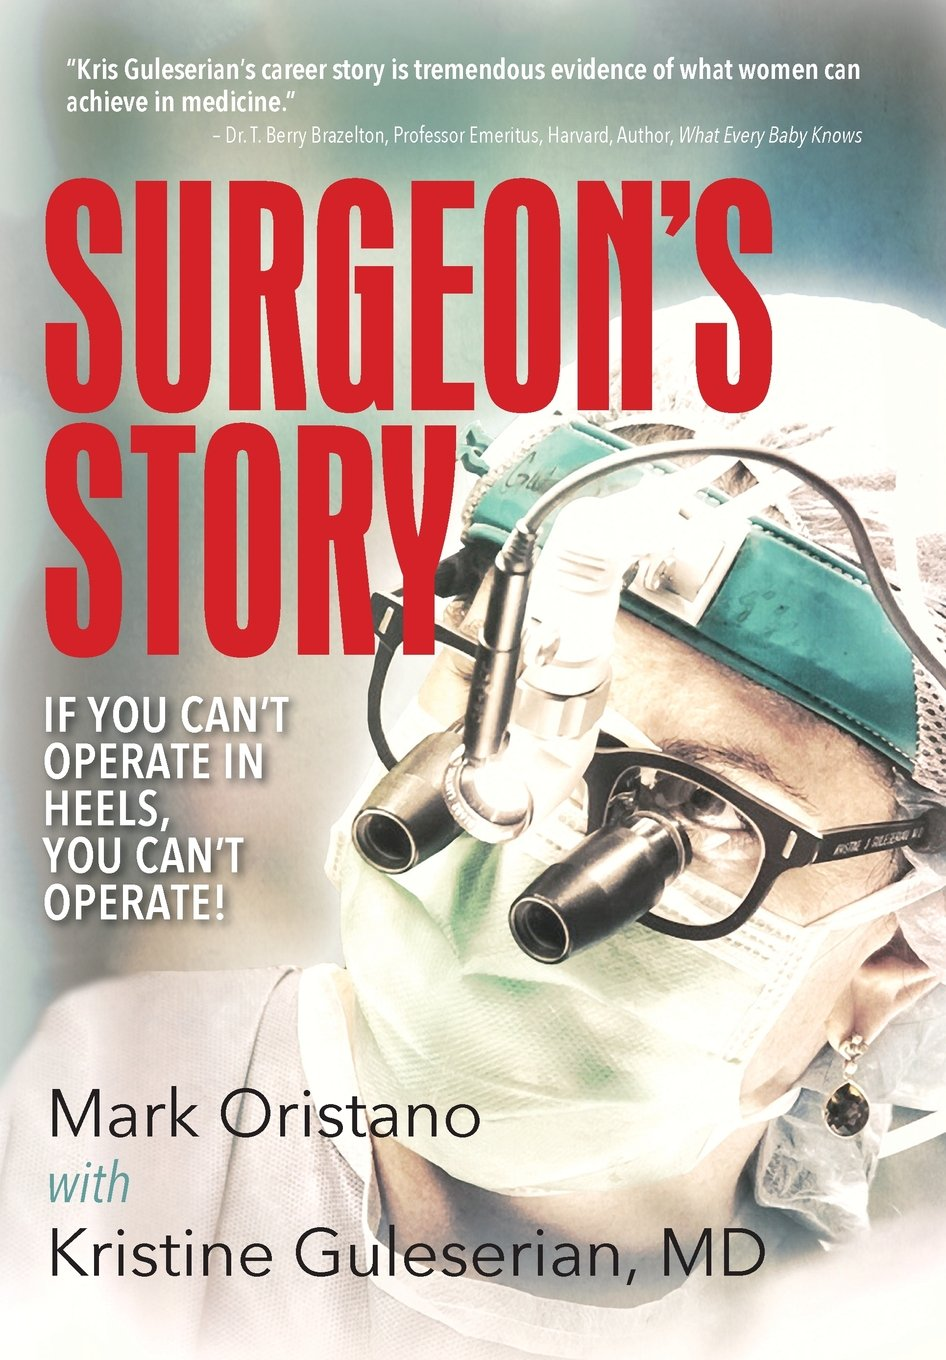 Surgeon's Story: If You Can't Operate in Heels, You Can't Operate! Hardcover – February 28, 2017 Mark Oristano You Can' t Operate! Authority Publishing 1935953788